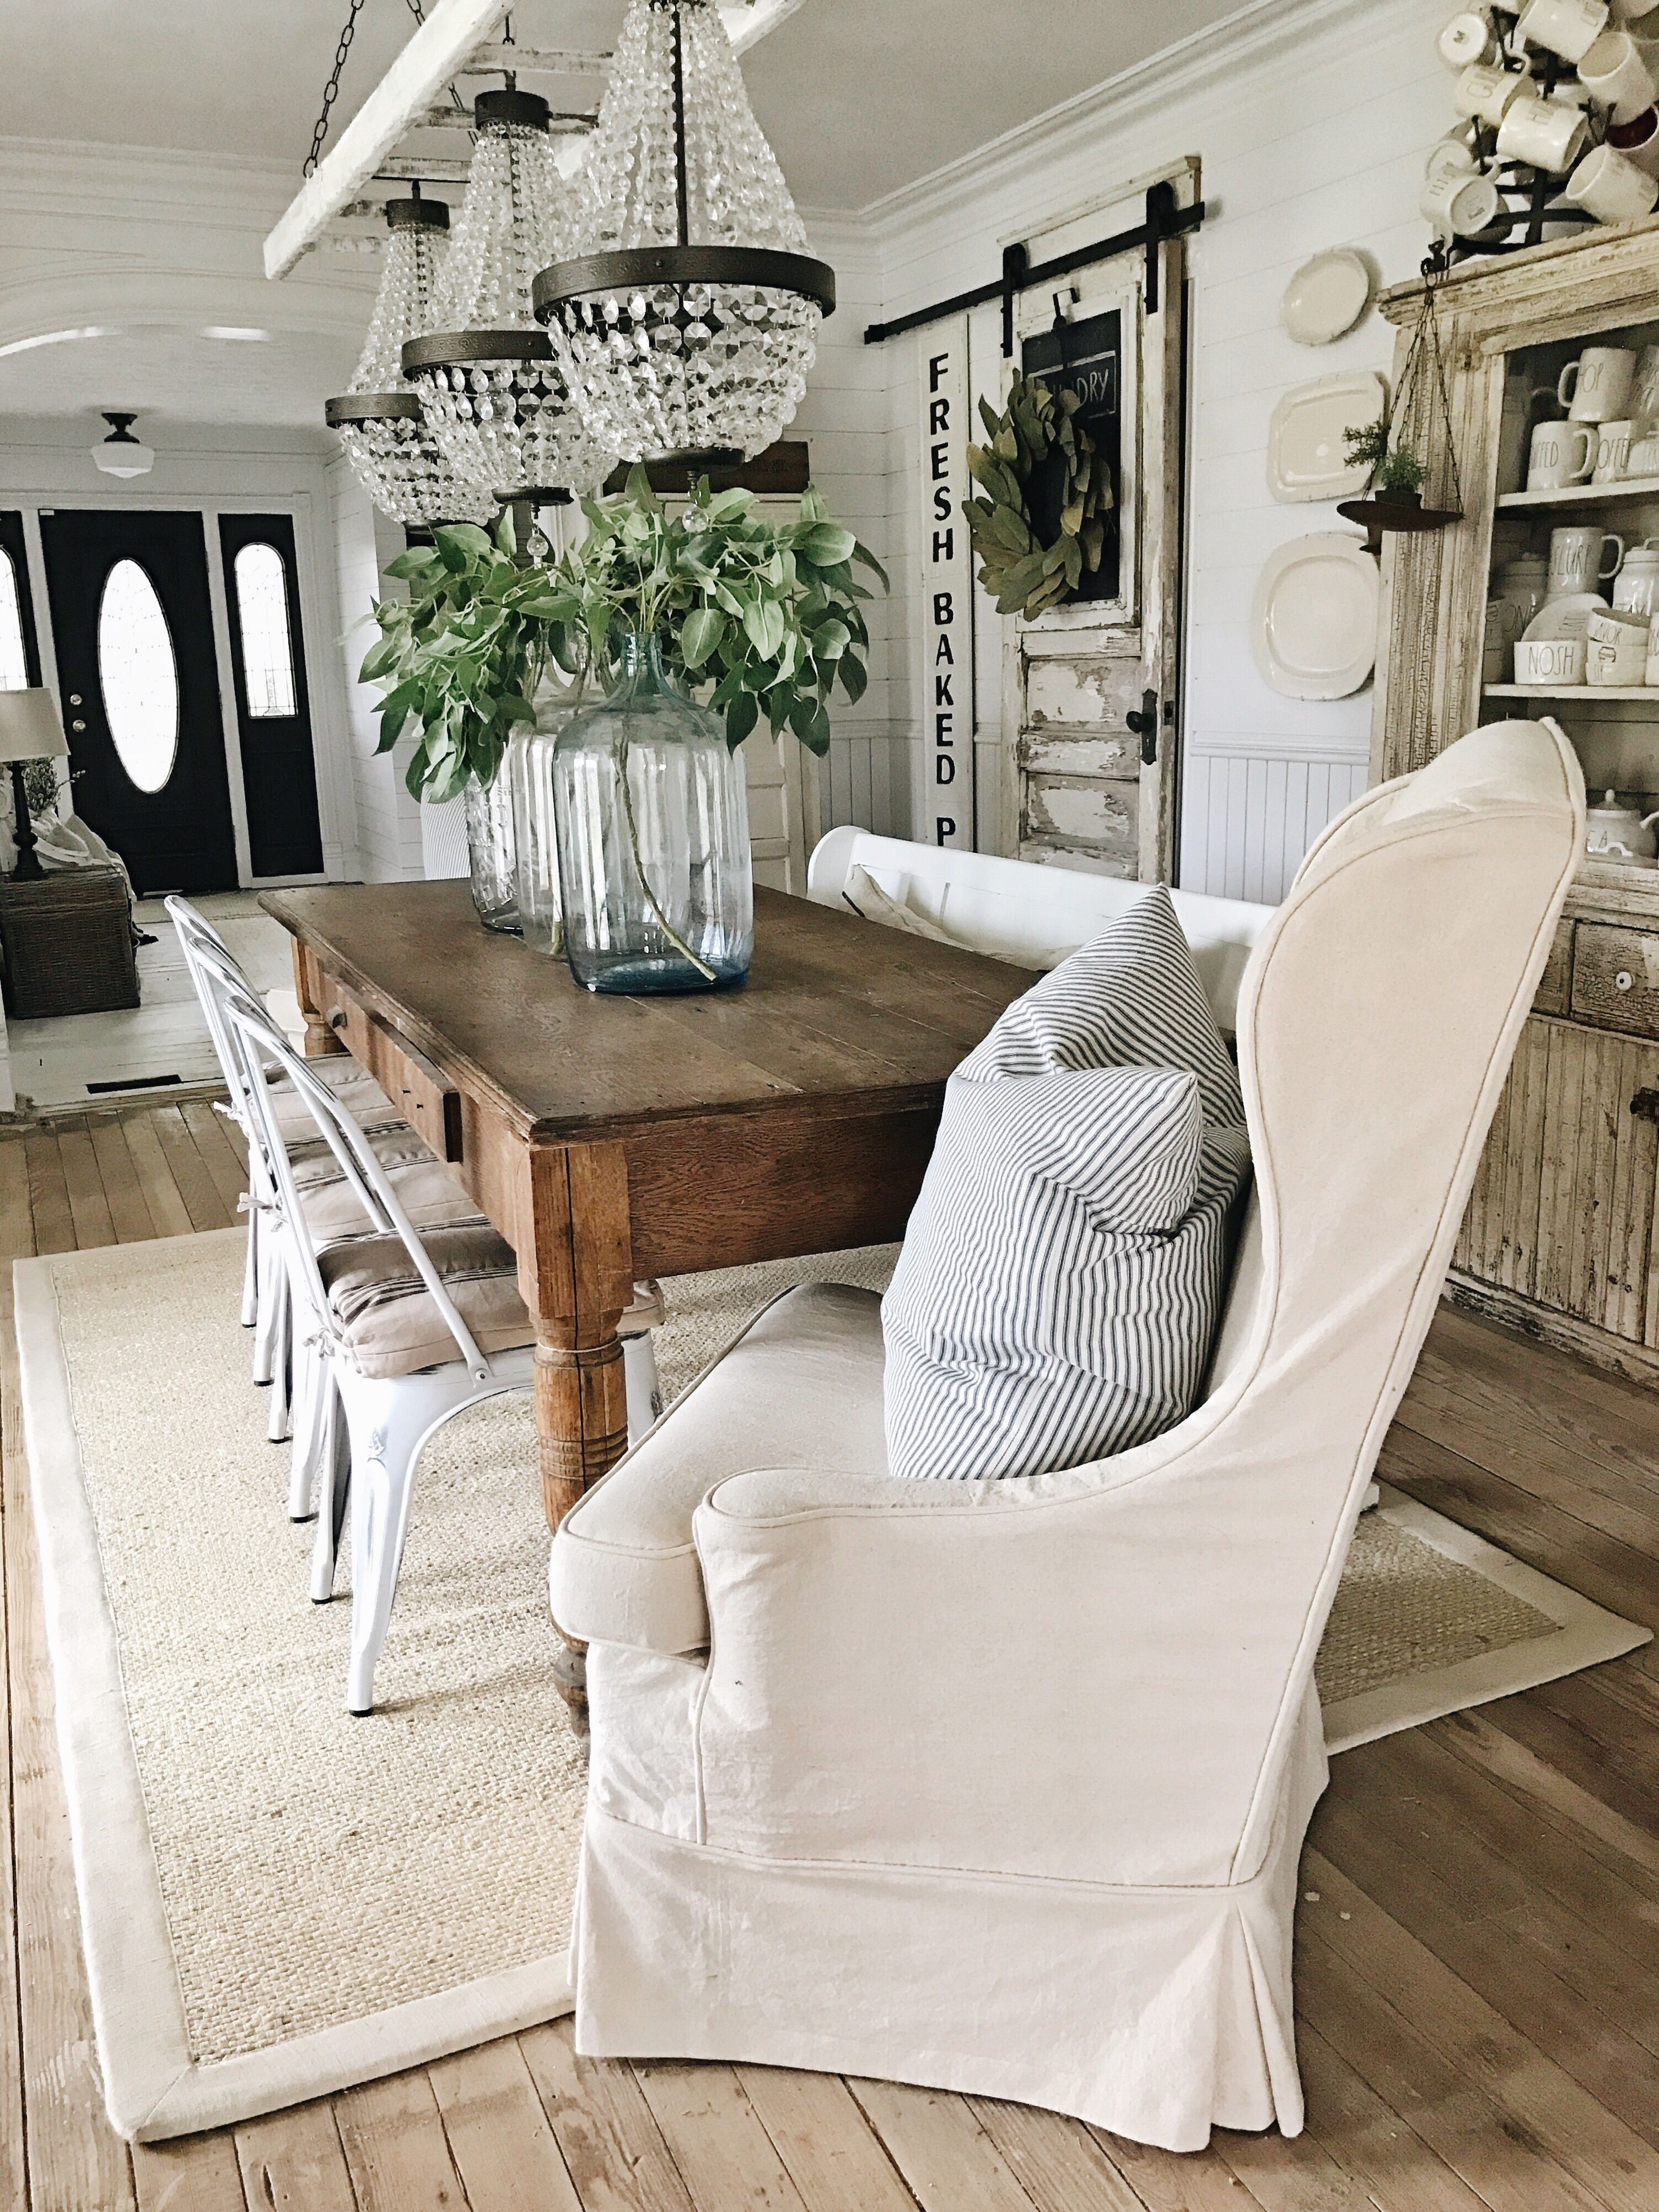 37 Adorable Farmhouse Style Dining Room Design Ideas Whenever You Design French Country Dining Room Farmhouse Dining Rooms Decor Modern Farmhouse Dining Room